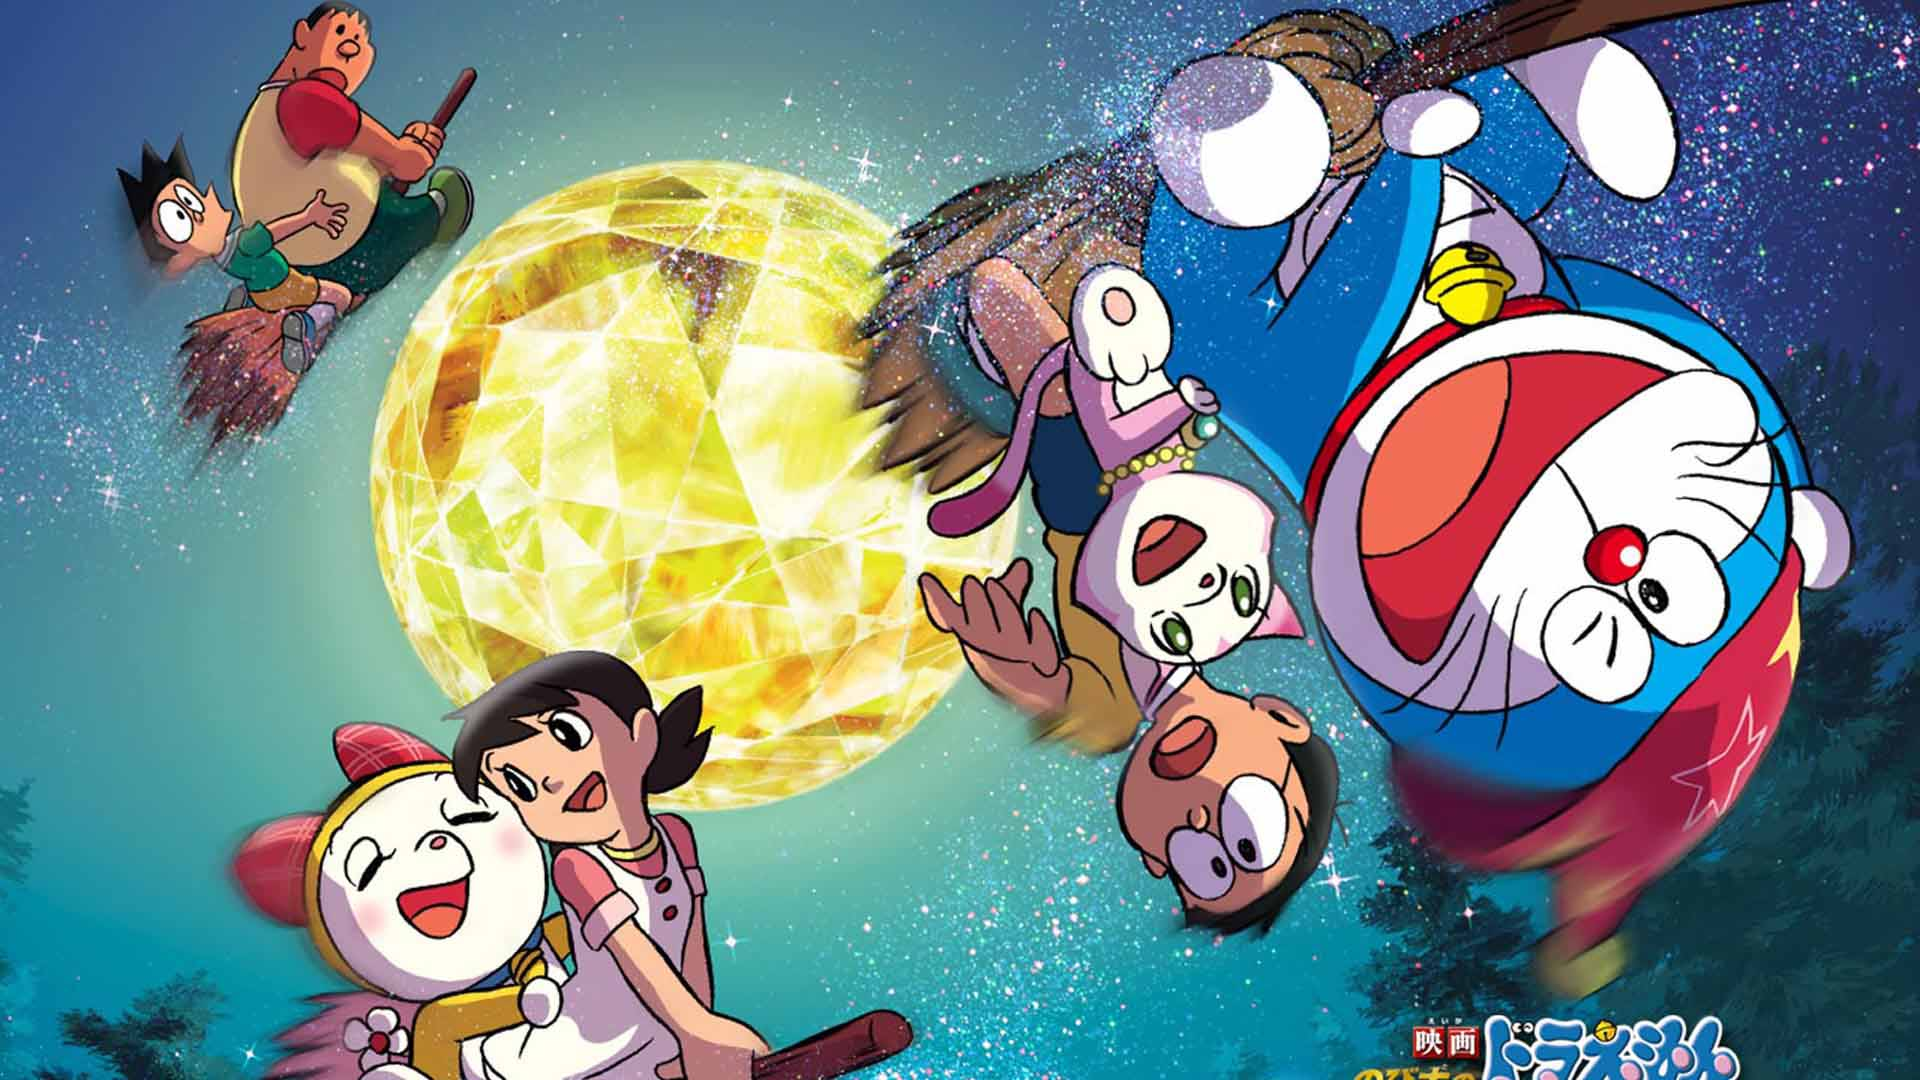 Doraemon Hd Wallpapers Wallpaper High Definition High Quality